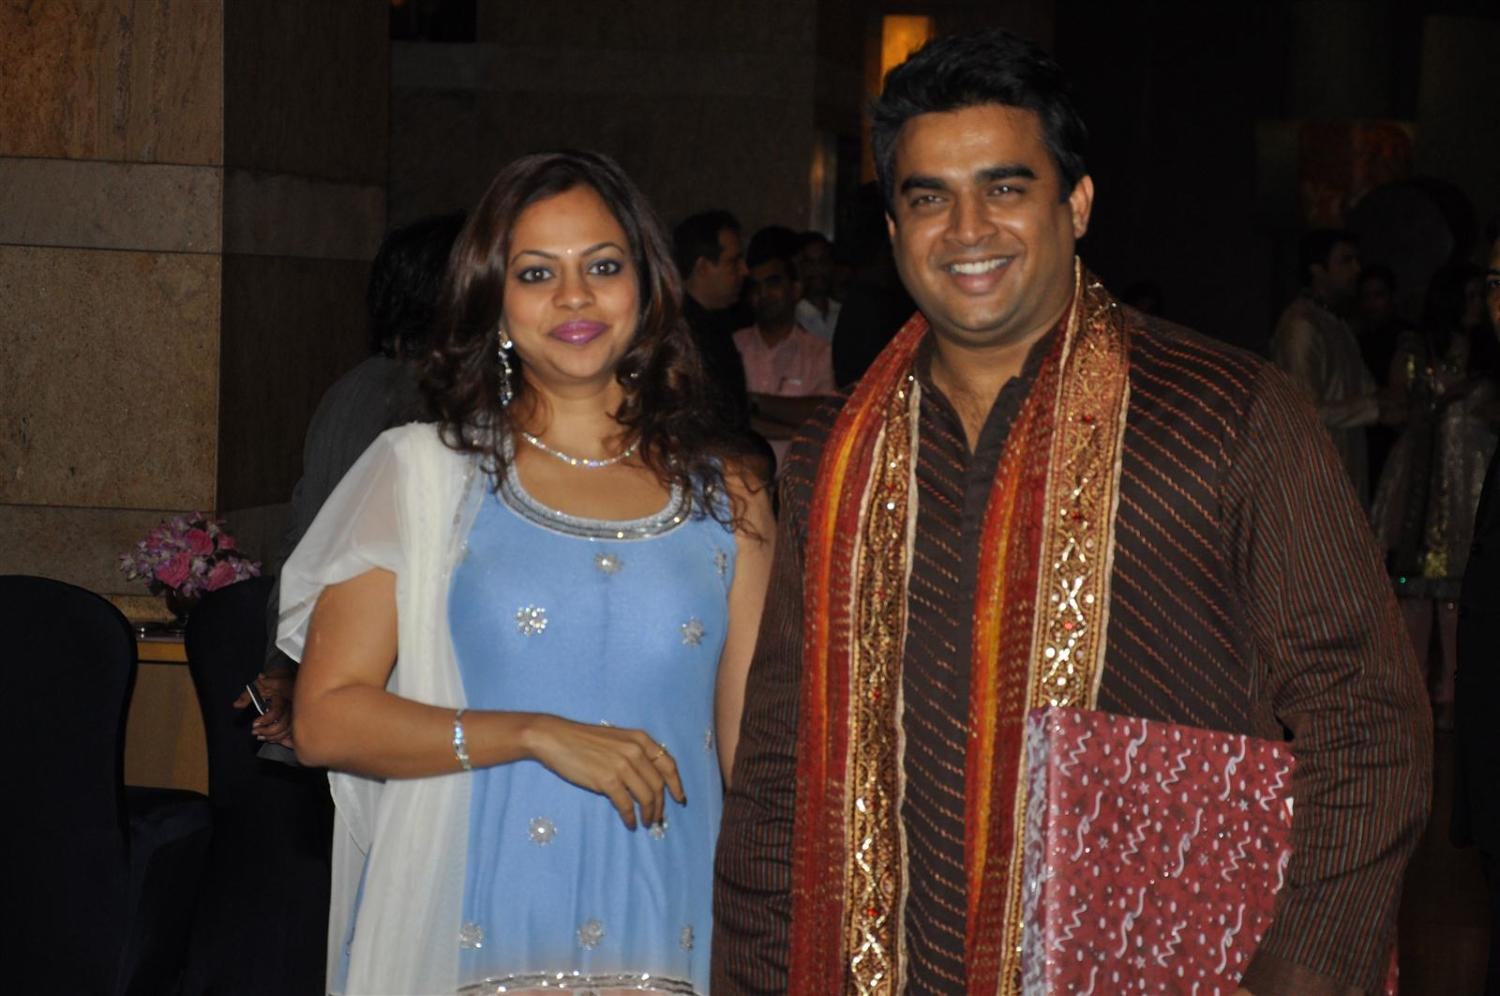 madhavan with wife sarita at wedding sangeet ceremony of